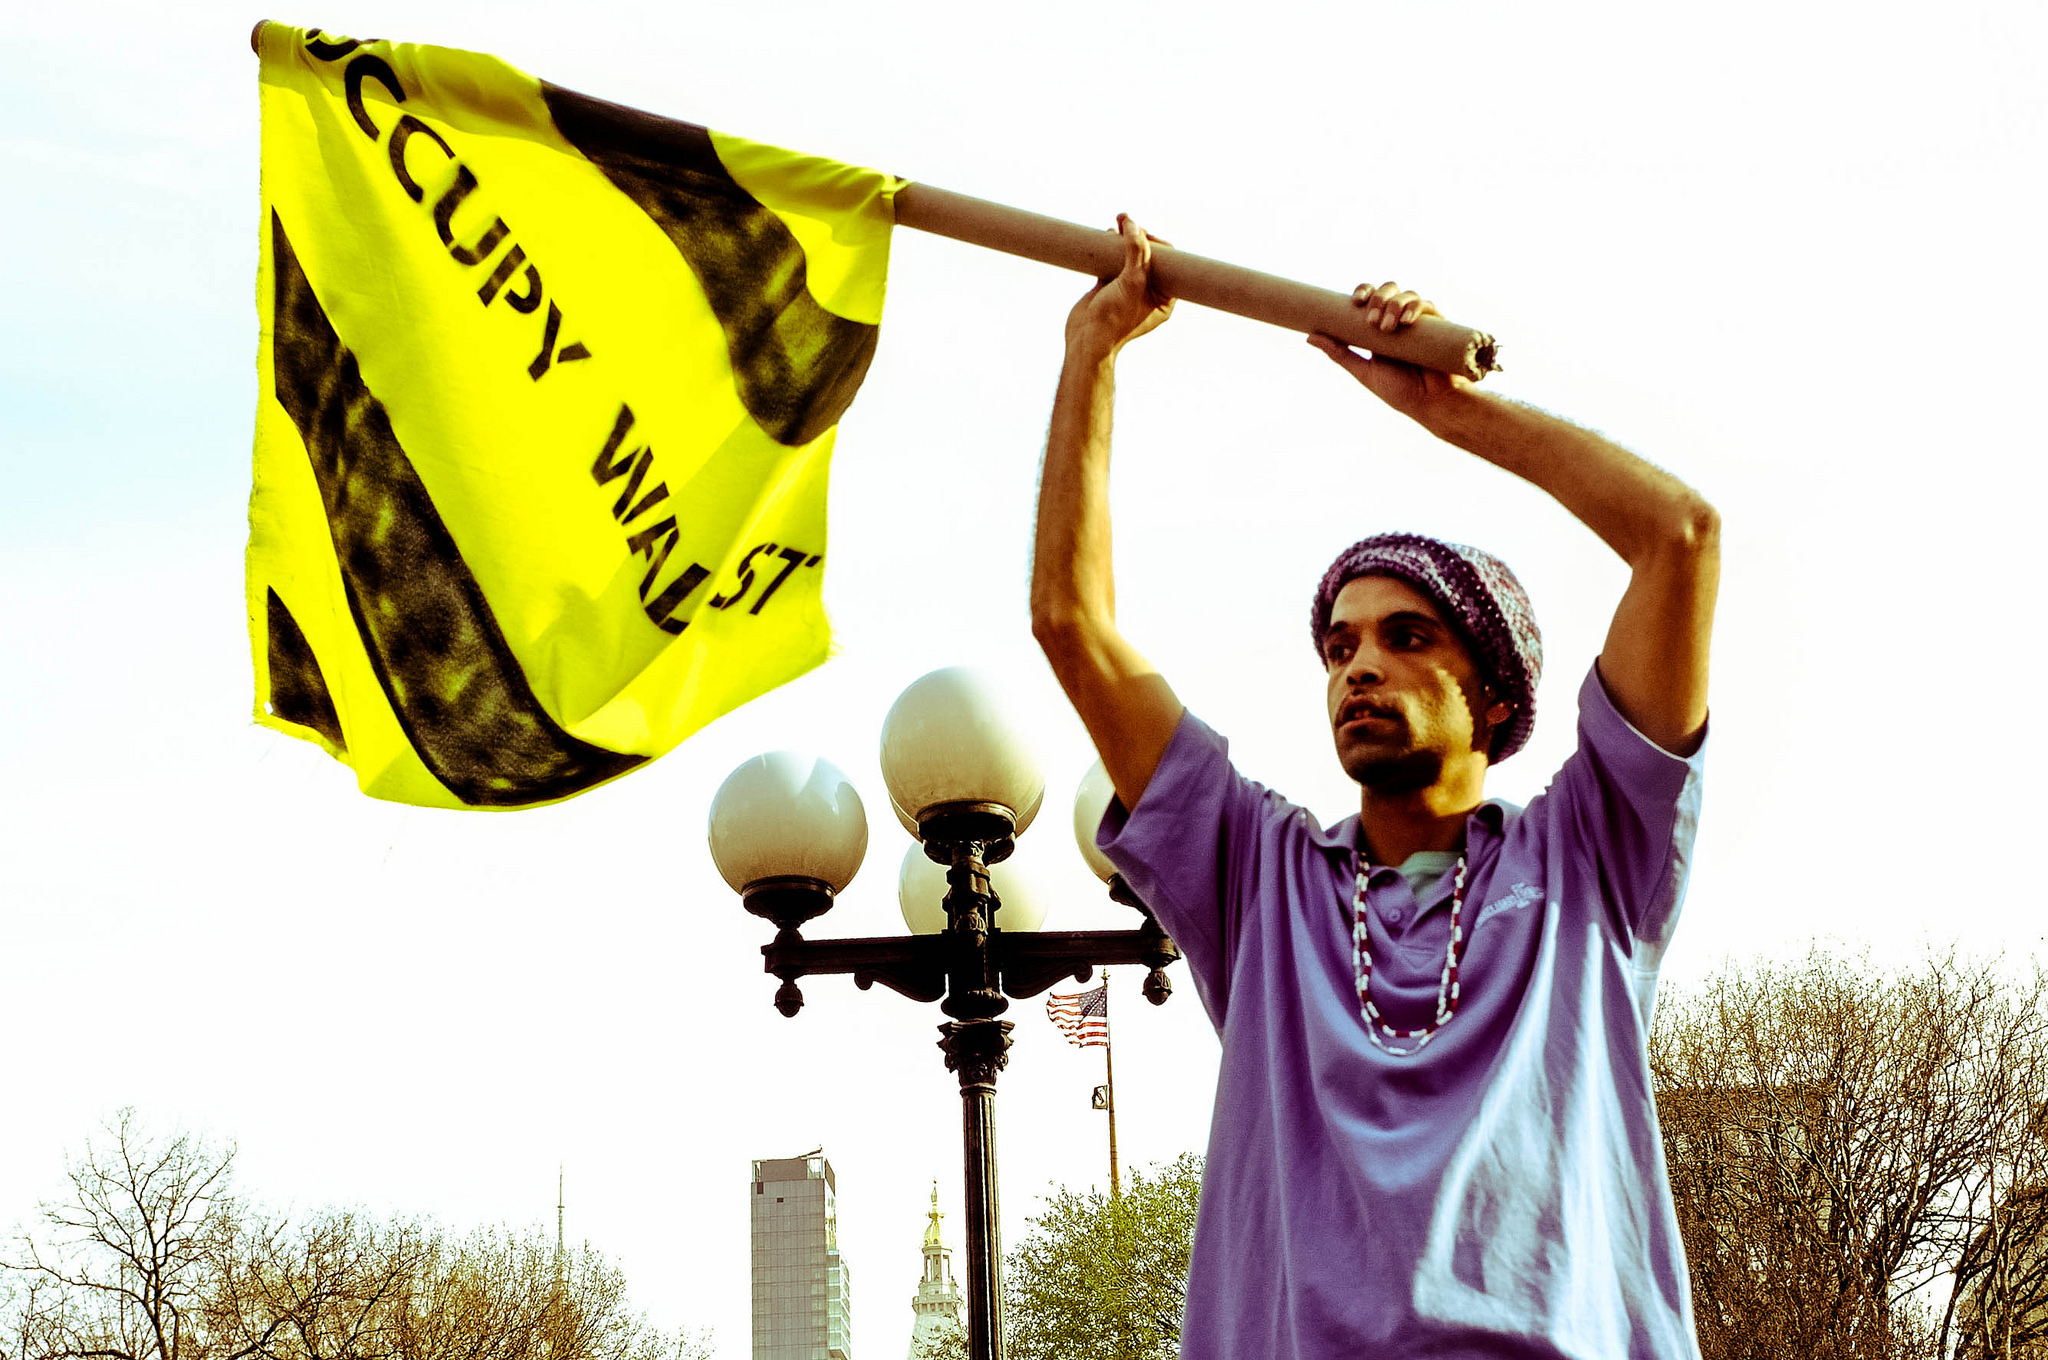 An activist waves a yellow and black Occupy Wall Street flag in New York City on March 23, 2012.